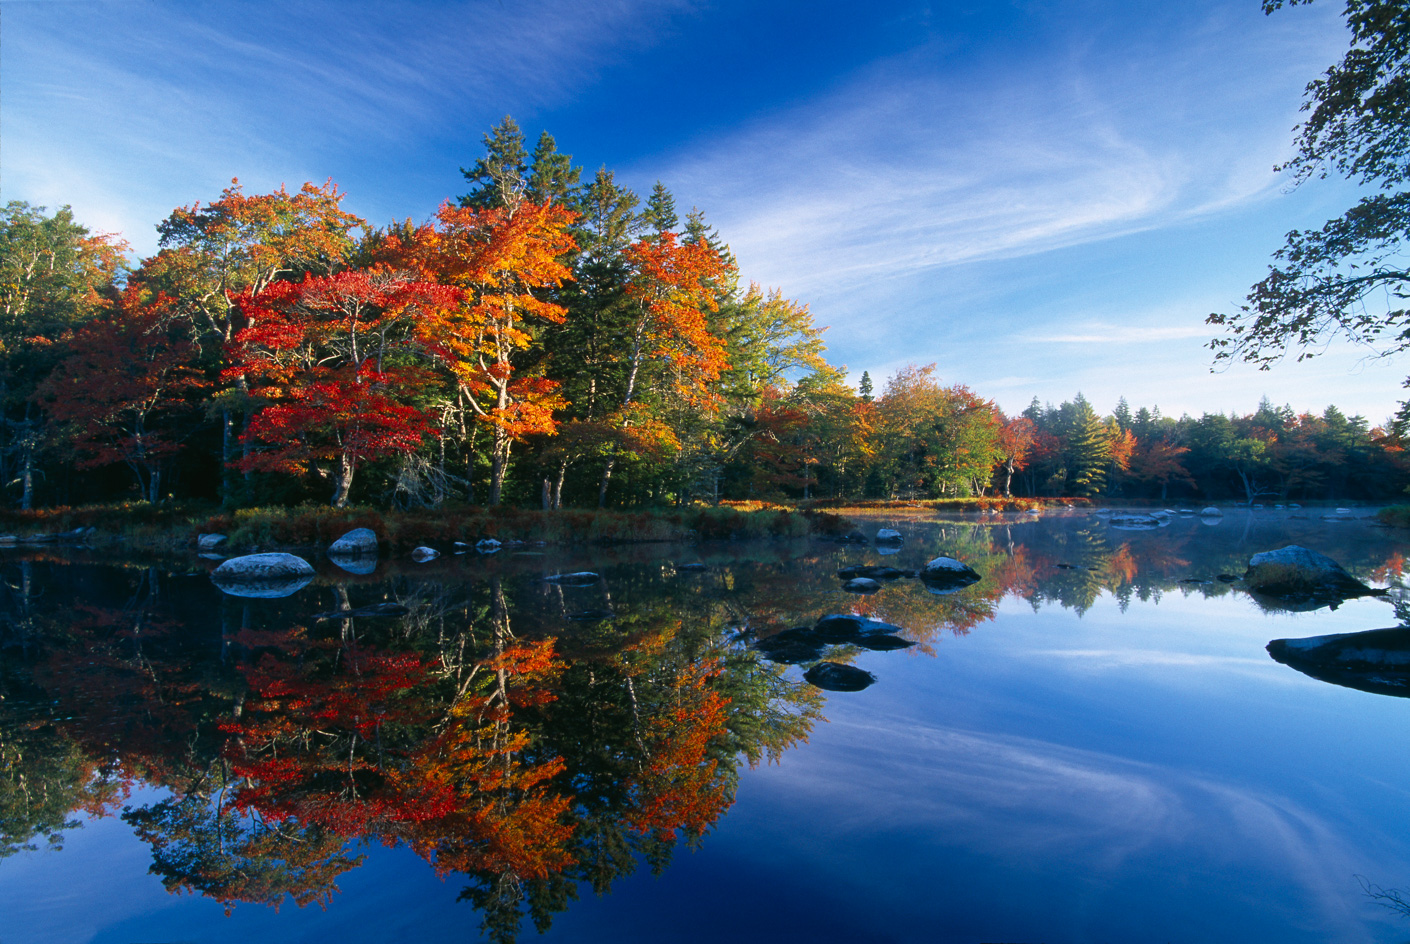 Autumn, Mersey River, Kejimkujik National Park, Nova Scotia, Canada